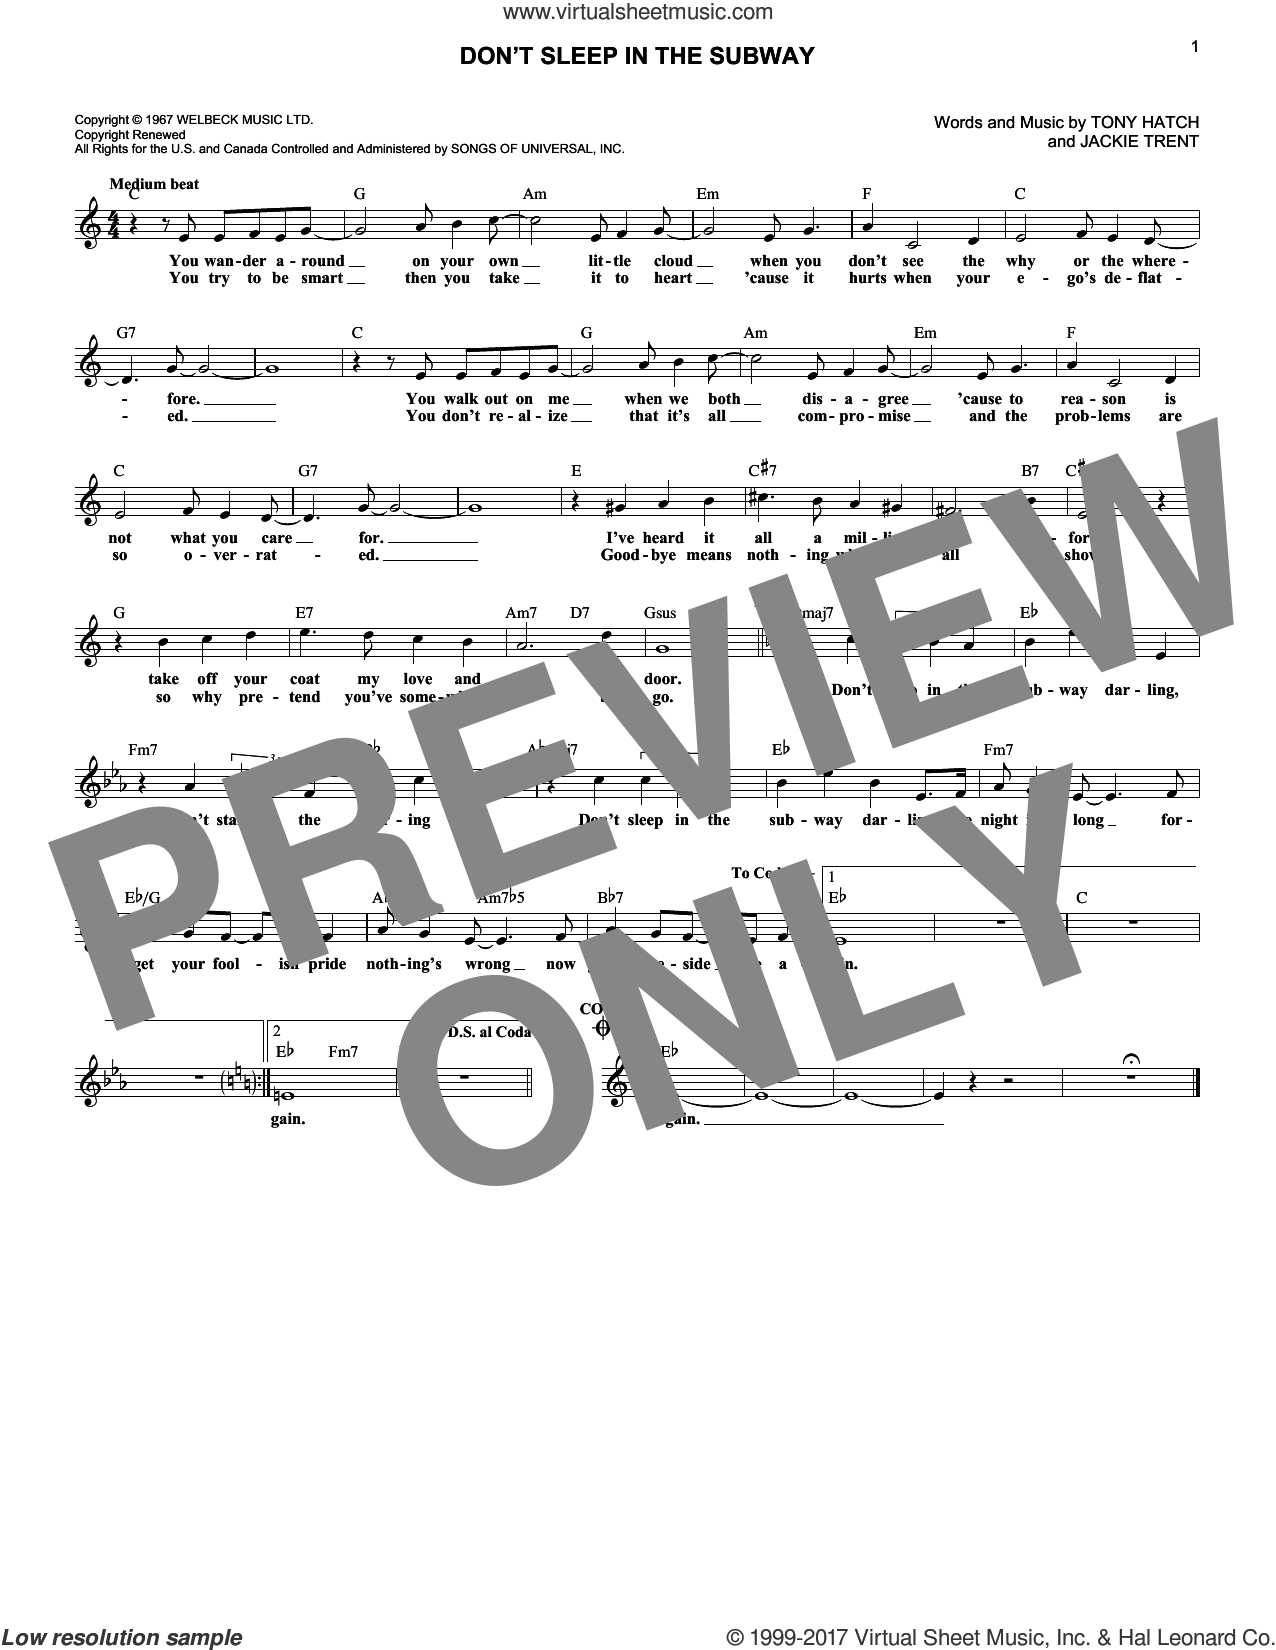 Don't Sleep In The Subway sheet music for voice and other instruments (fake book) by Tony Hatch, Petula Clark and Jackie Trent. Score Image Preview.